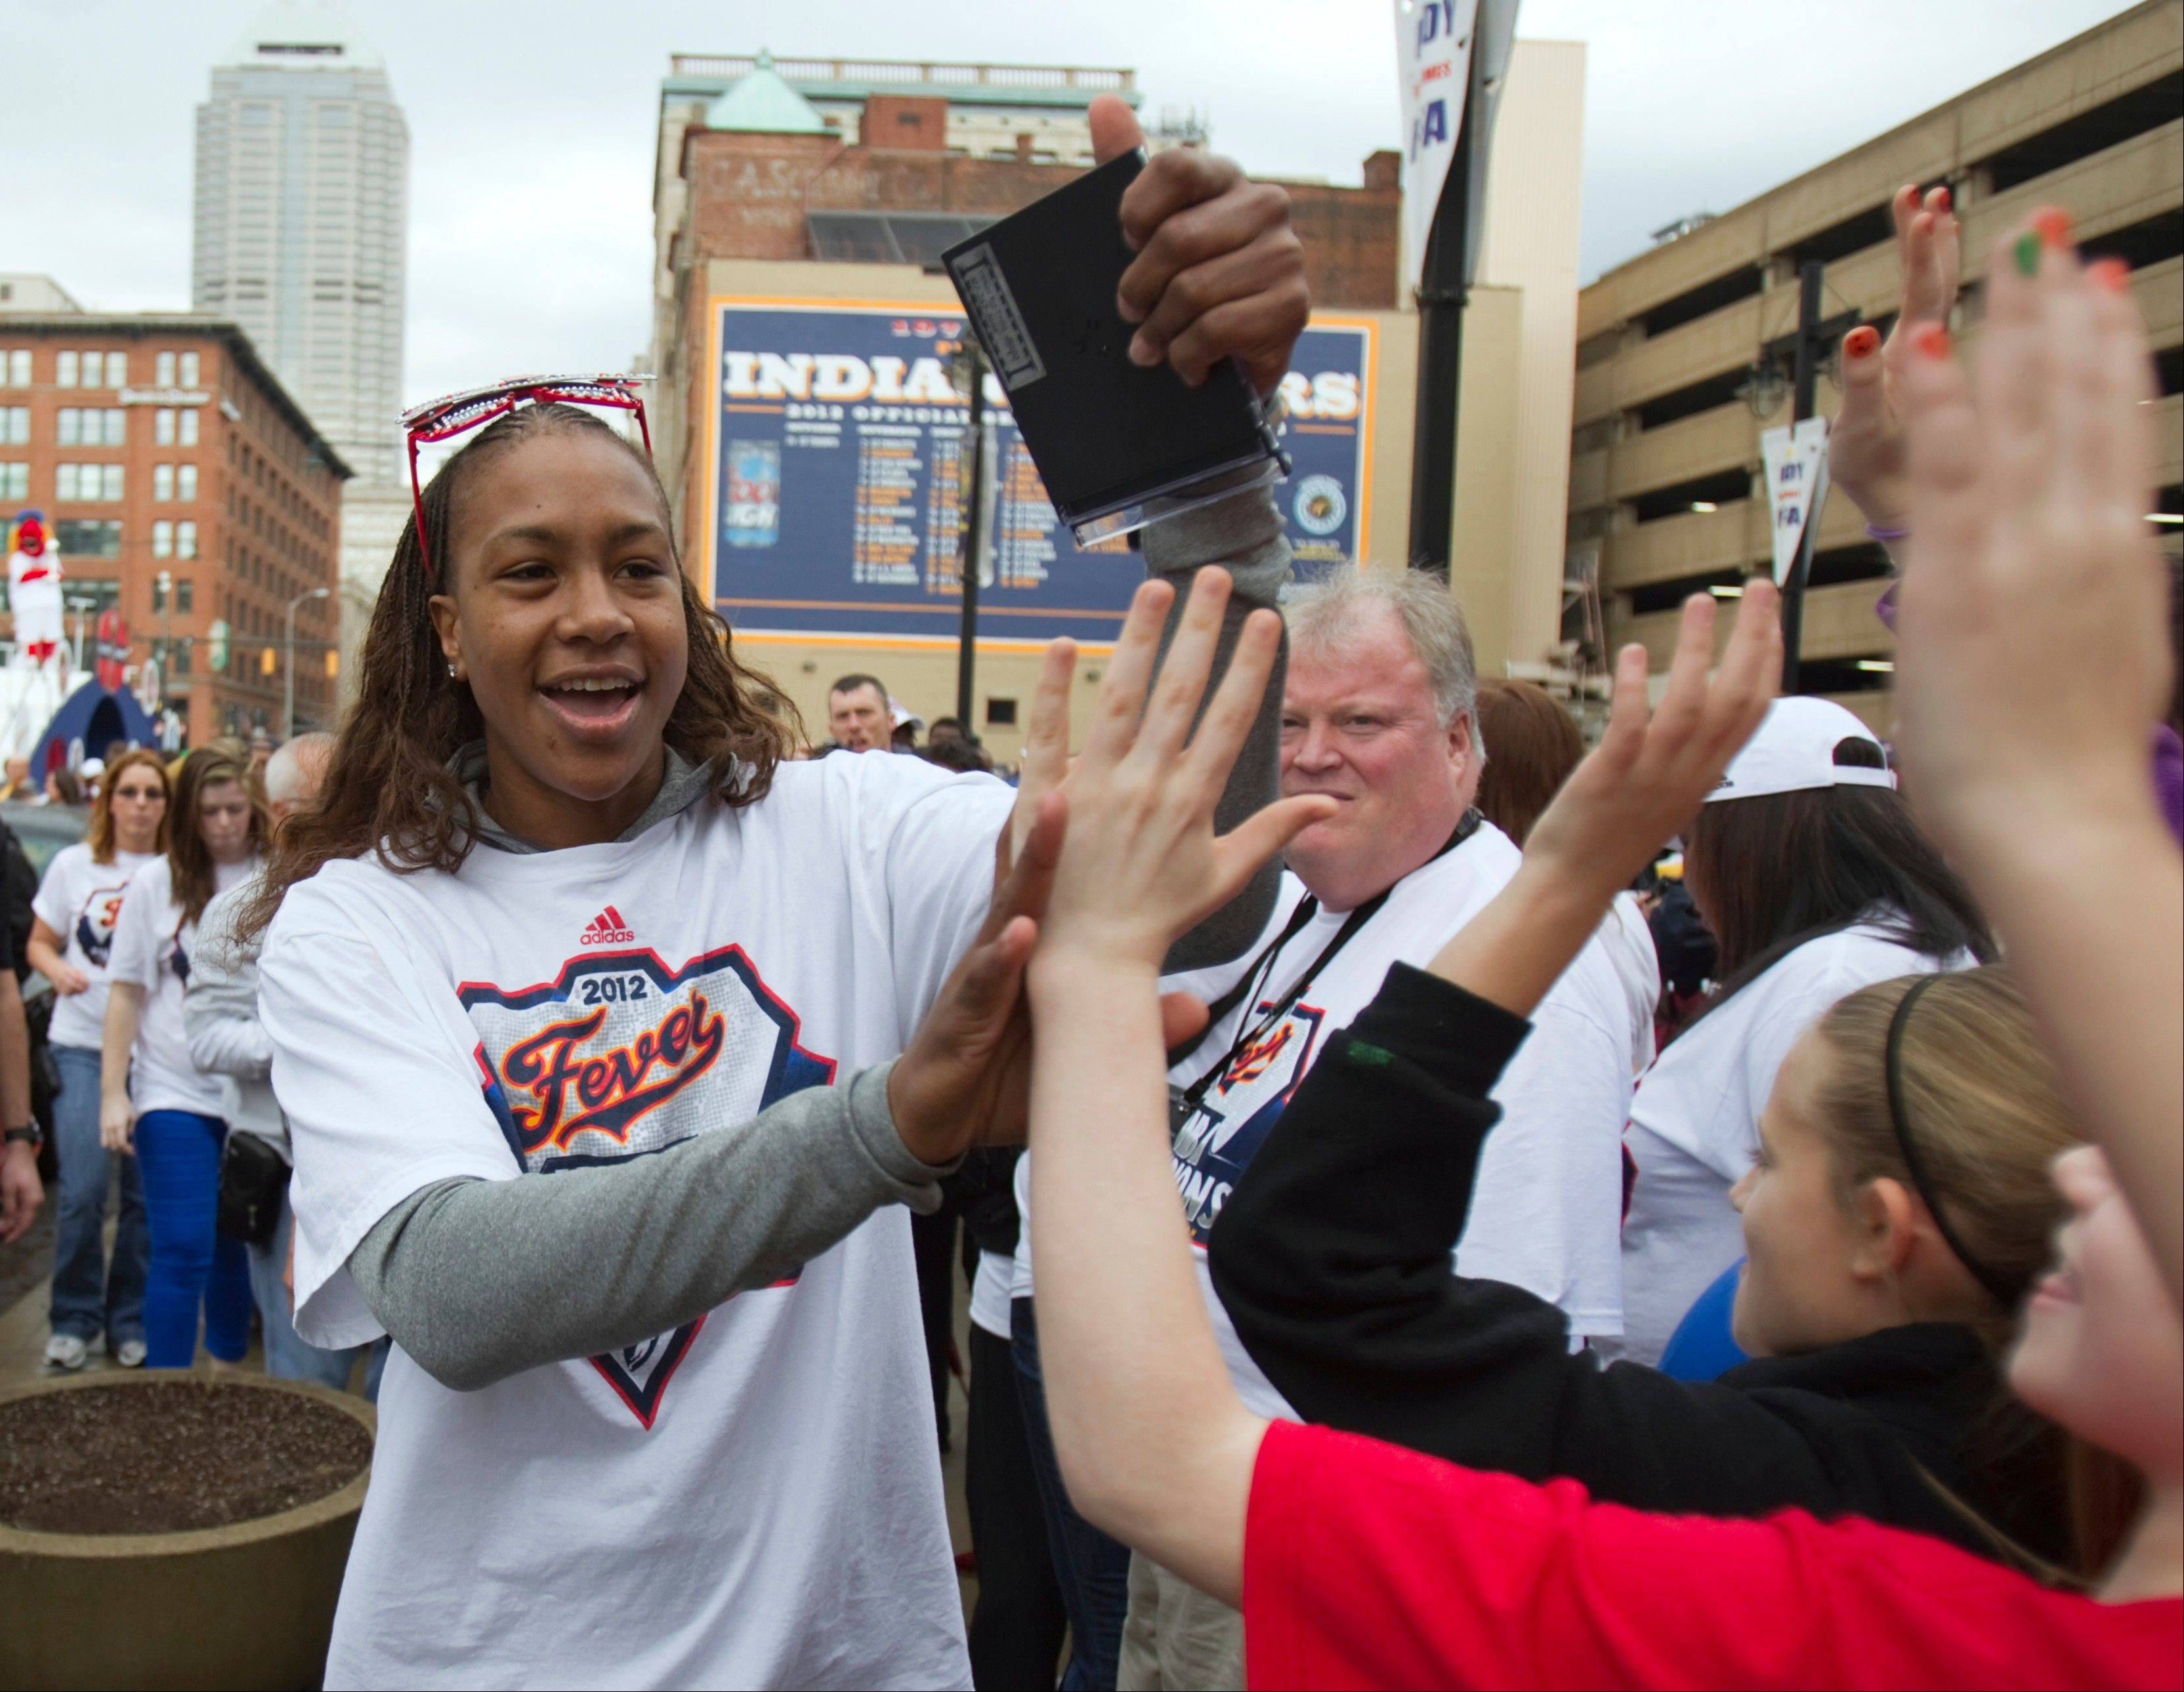 Indiana Fever�s Tamika Catchings, MVP of the WNBA Finals, celebrates with fans at Bankers Life Fieldhouse on Tuesday. The team and several thousand fans moved their party indoors to the field house as morning rain scrapped plans for a parade. The Fever wrapped up the title Sunday night, beating the Minnesota Lynx three games to one.